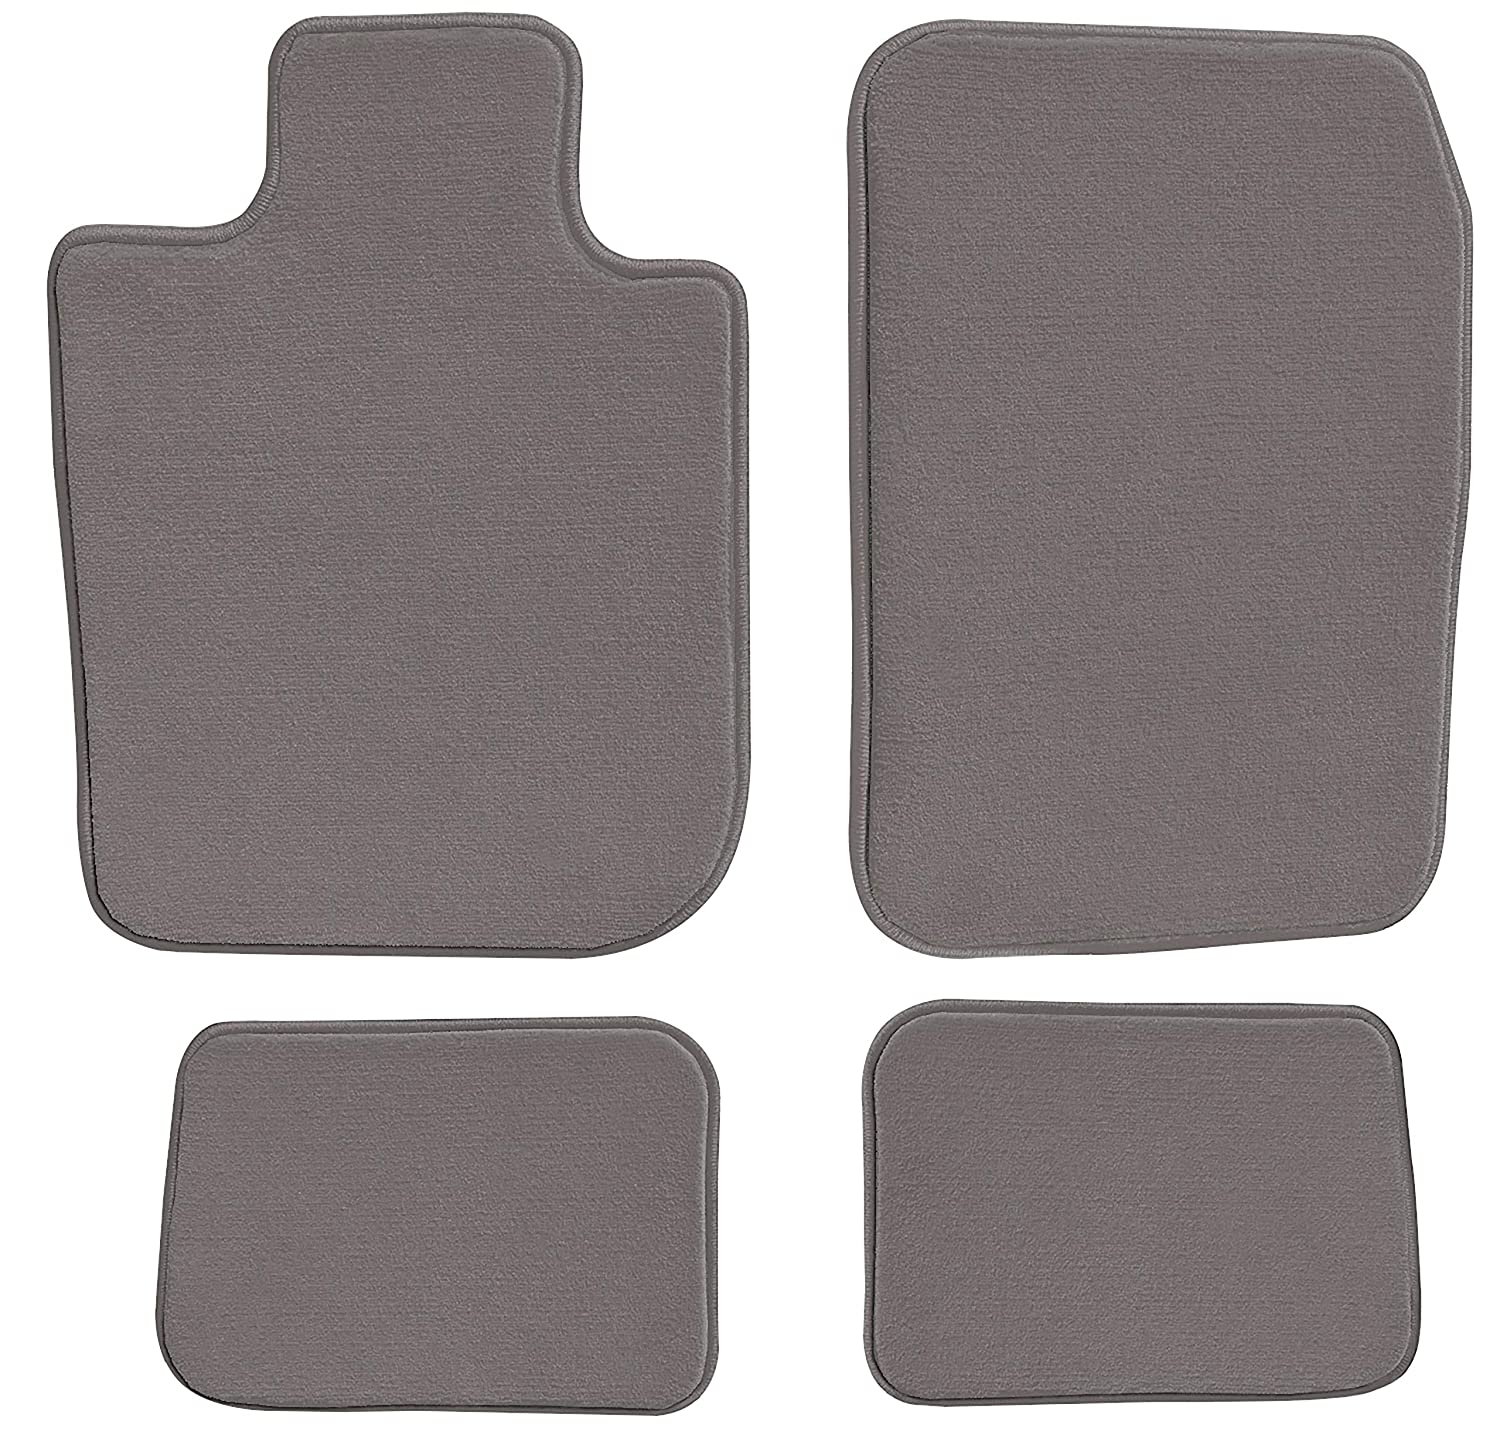 2006 2007 2009 2008 2010 Scion tC Grey Loop Driver GGBAILEY D4474A-S1A-GY-LP Custom Fit Car Mats for 2005 Passenger /& Rear Floor